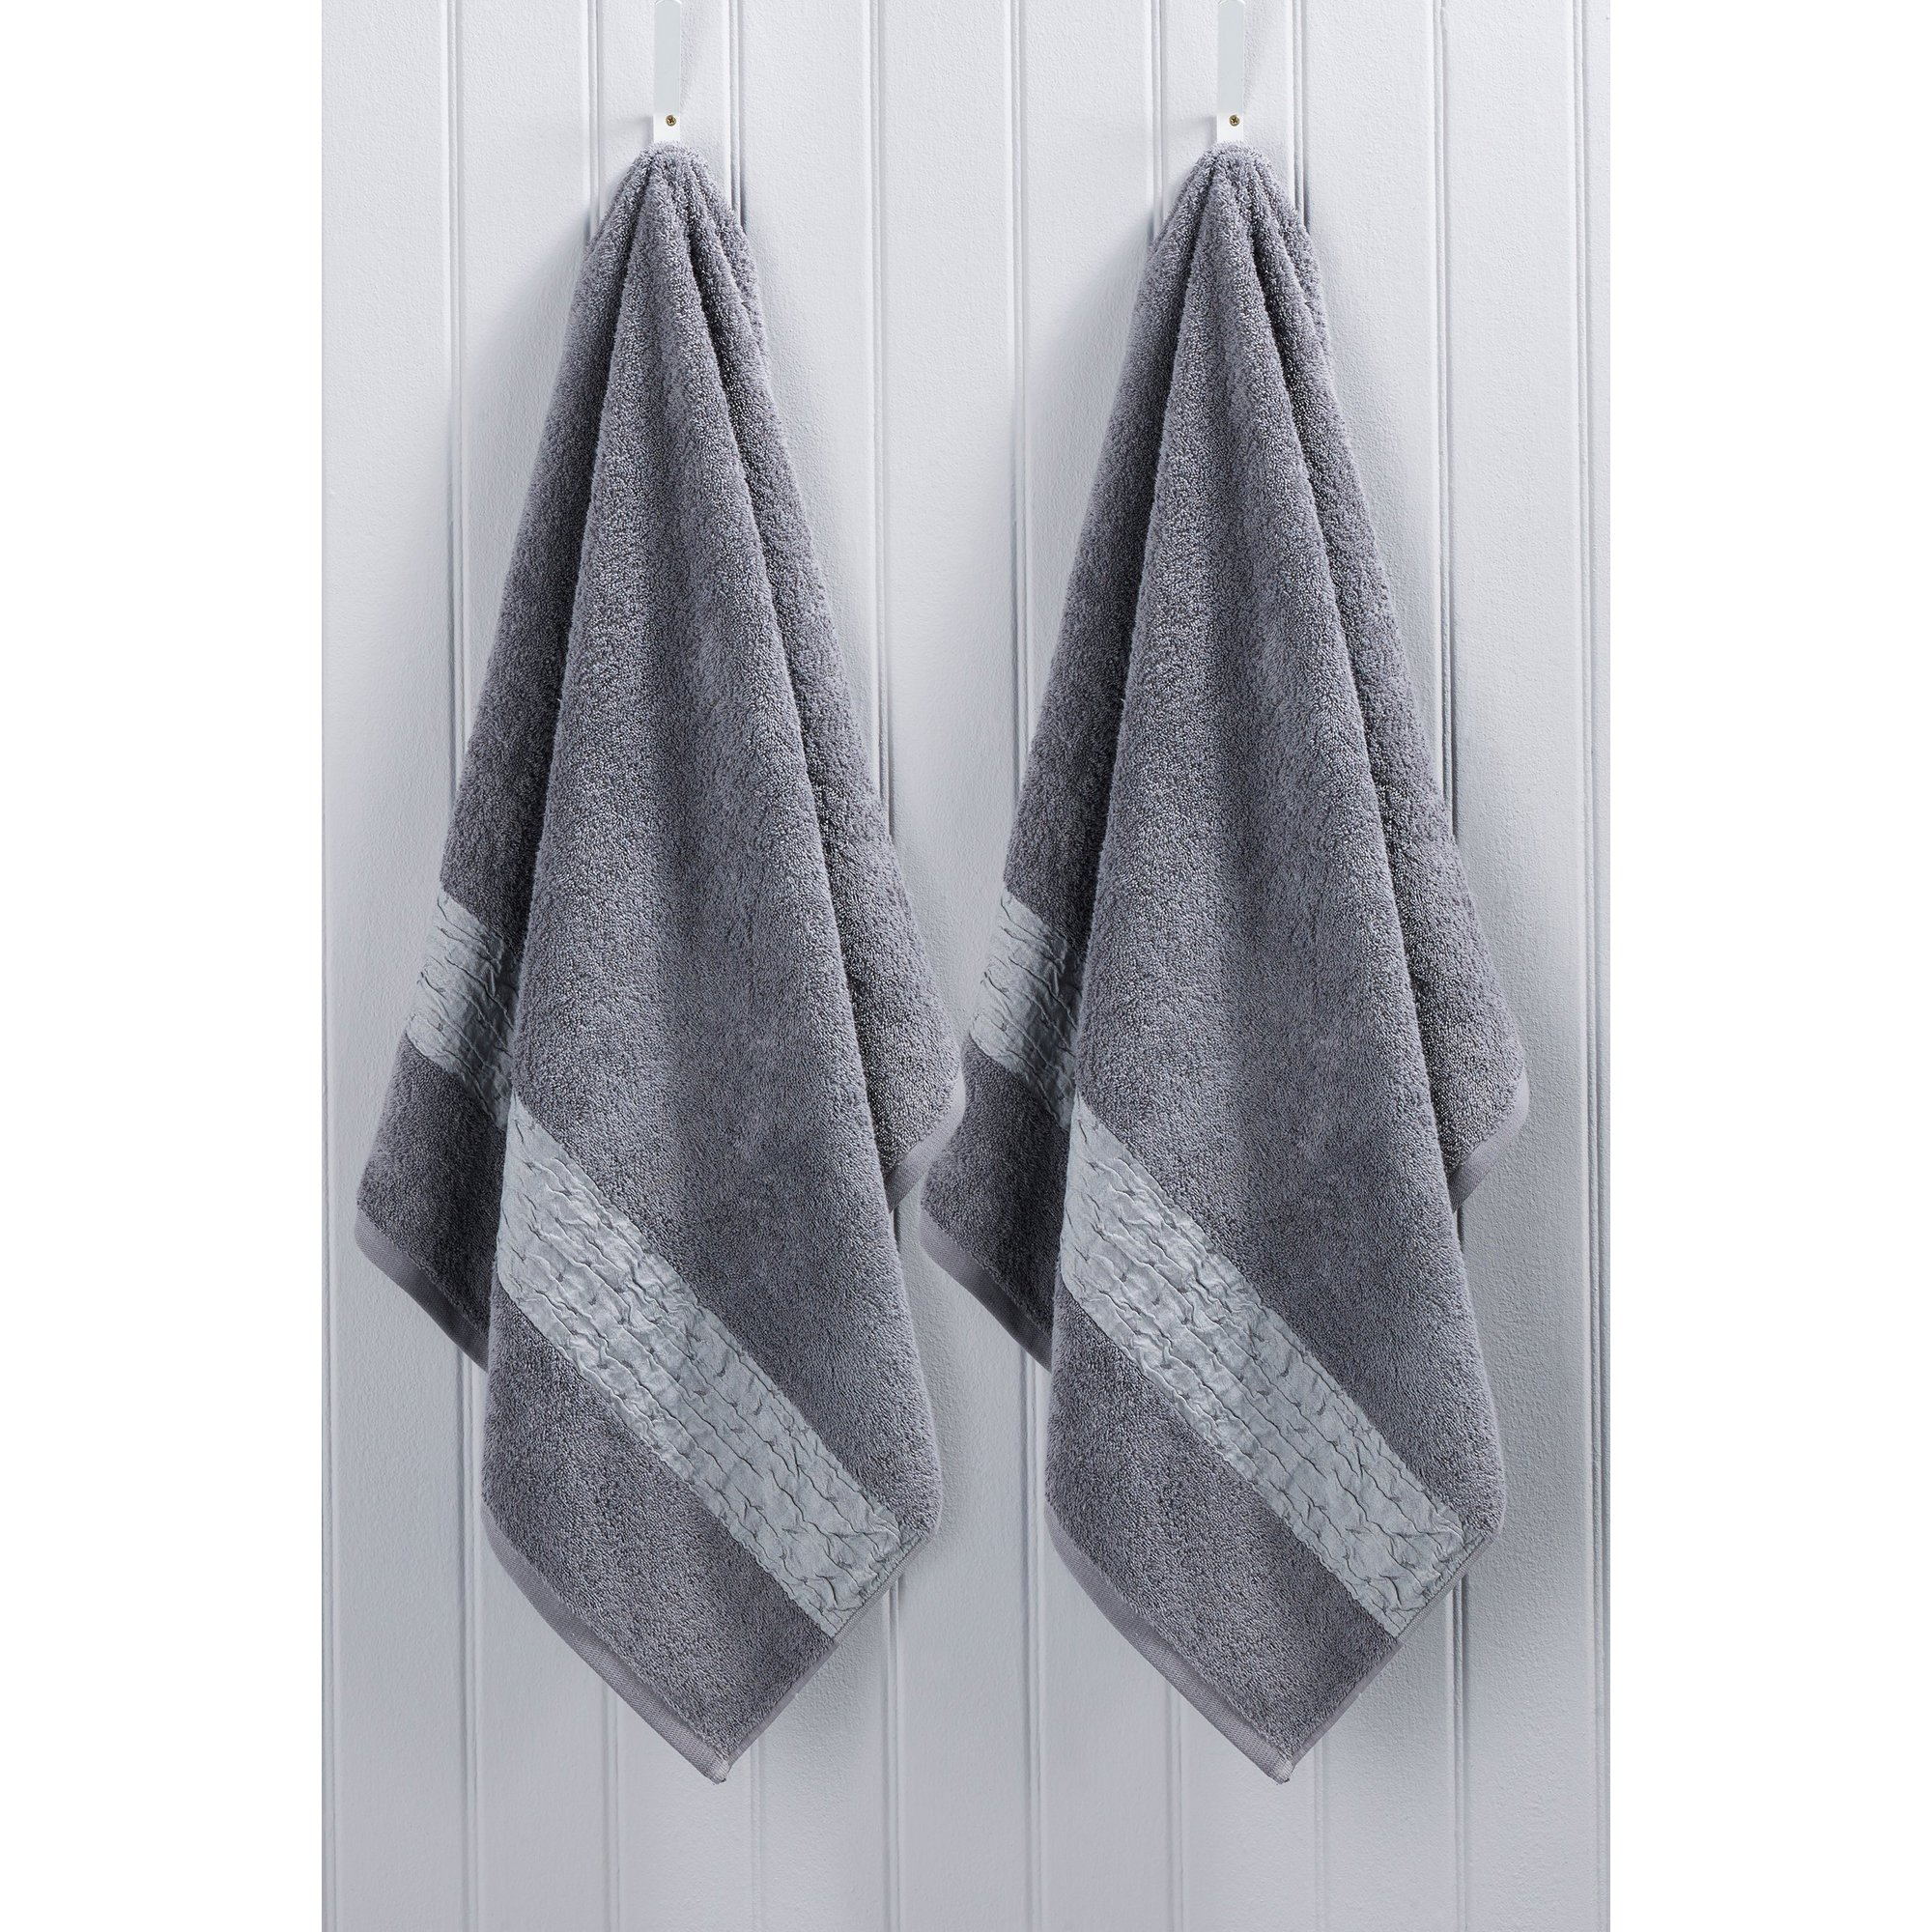 Image of Bainsford Pack of 2 Towels